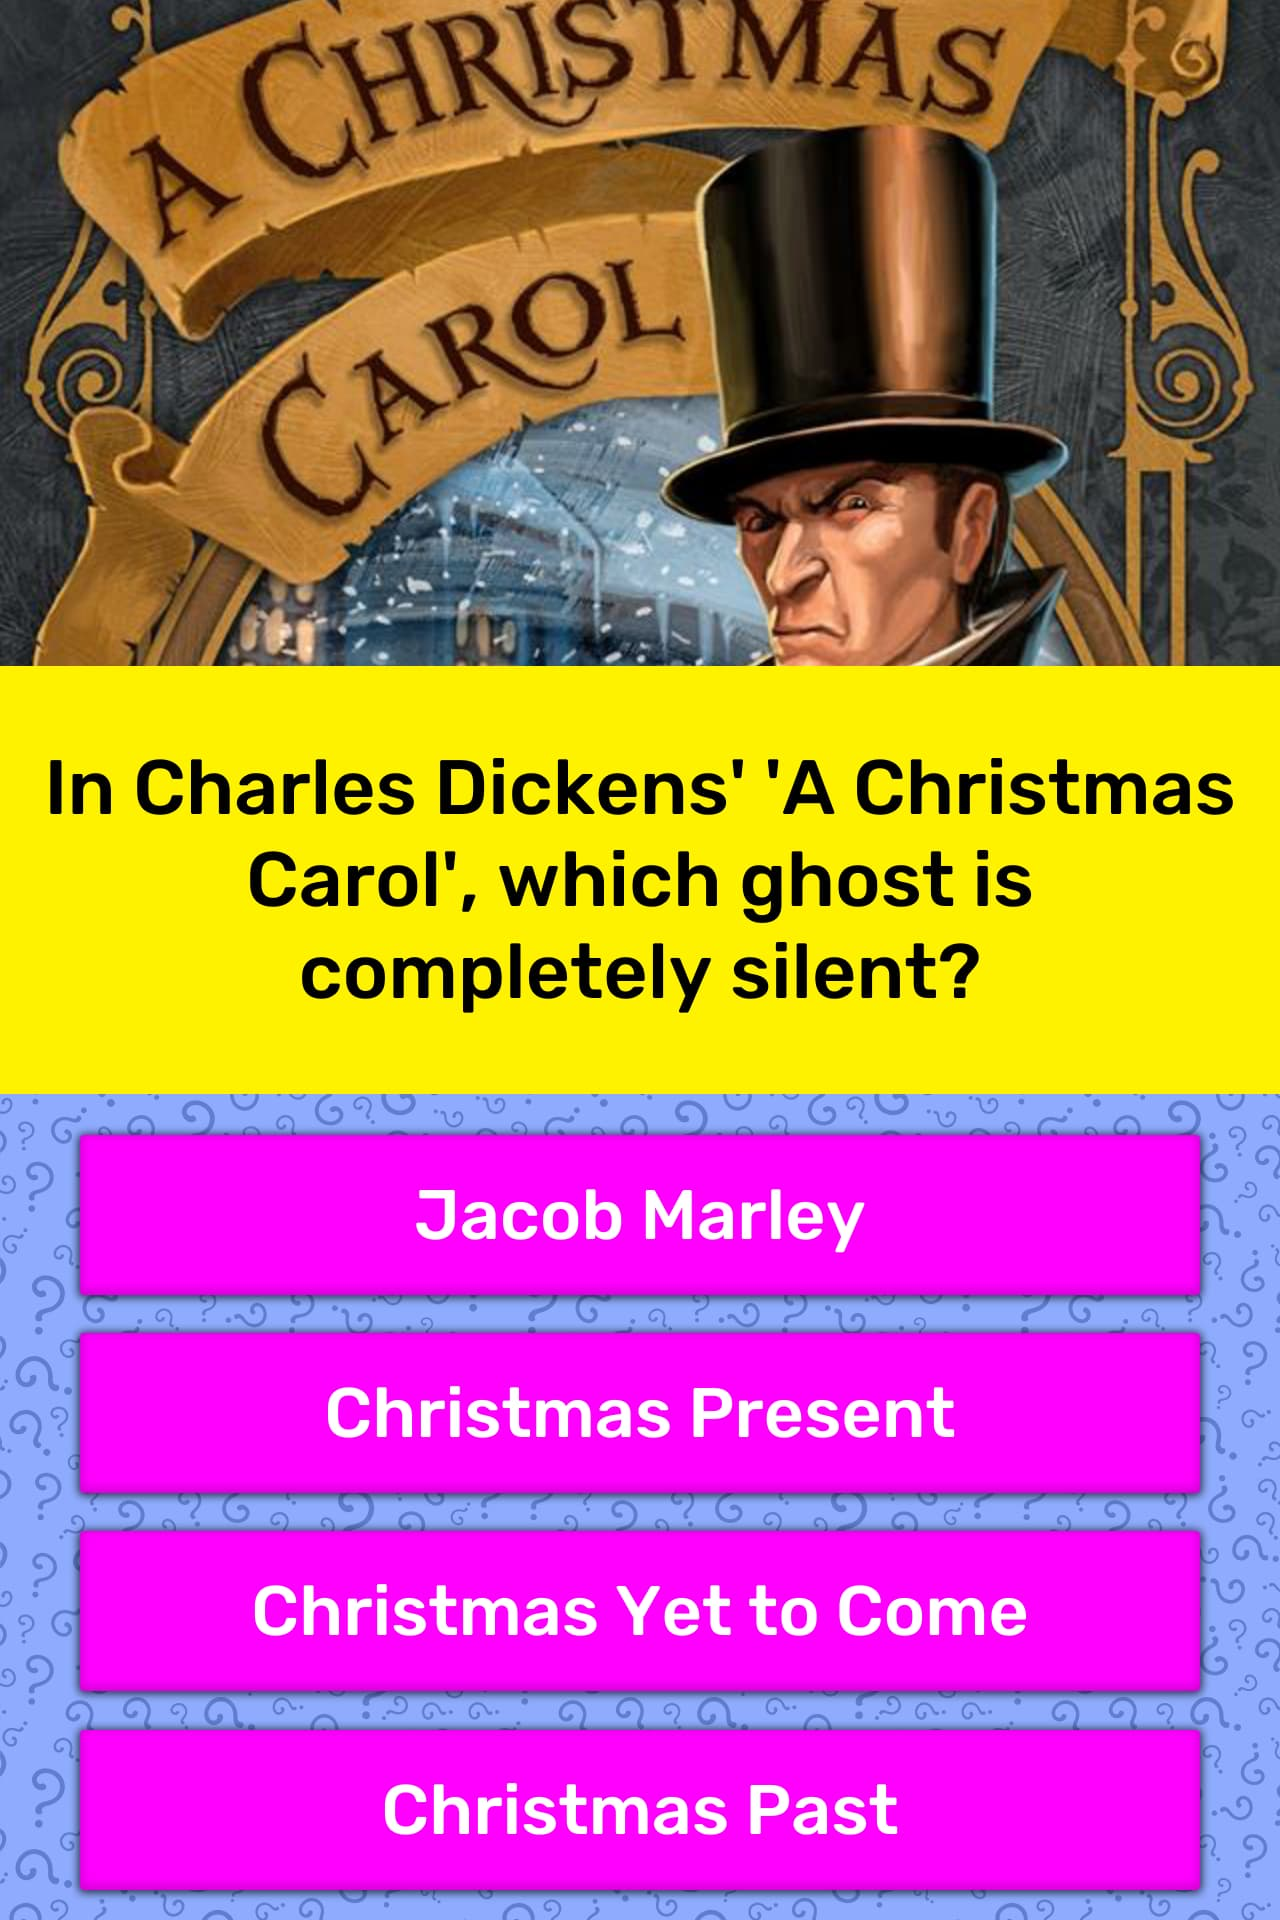 Christmas Carol Trivia.In Charles Dickens A Christmas Trivia Answers Quizzclub